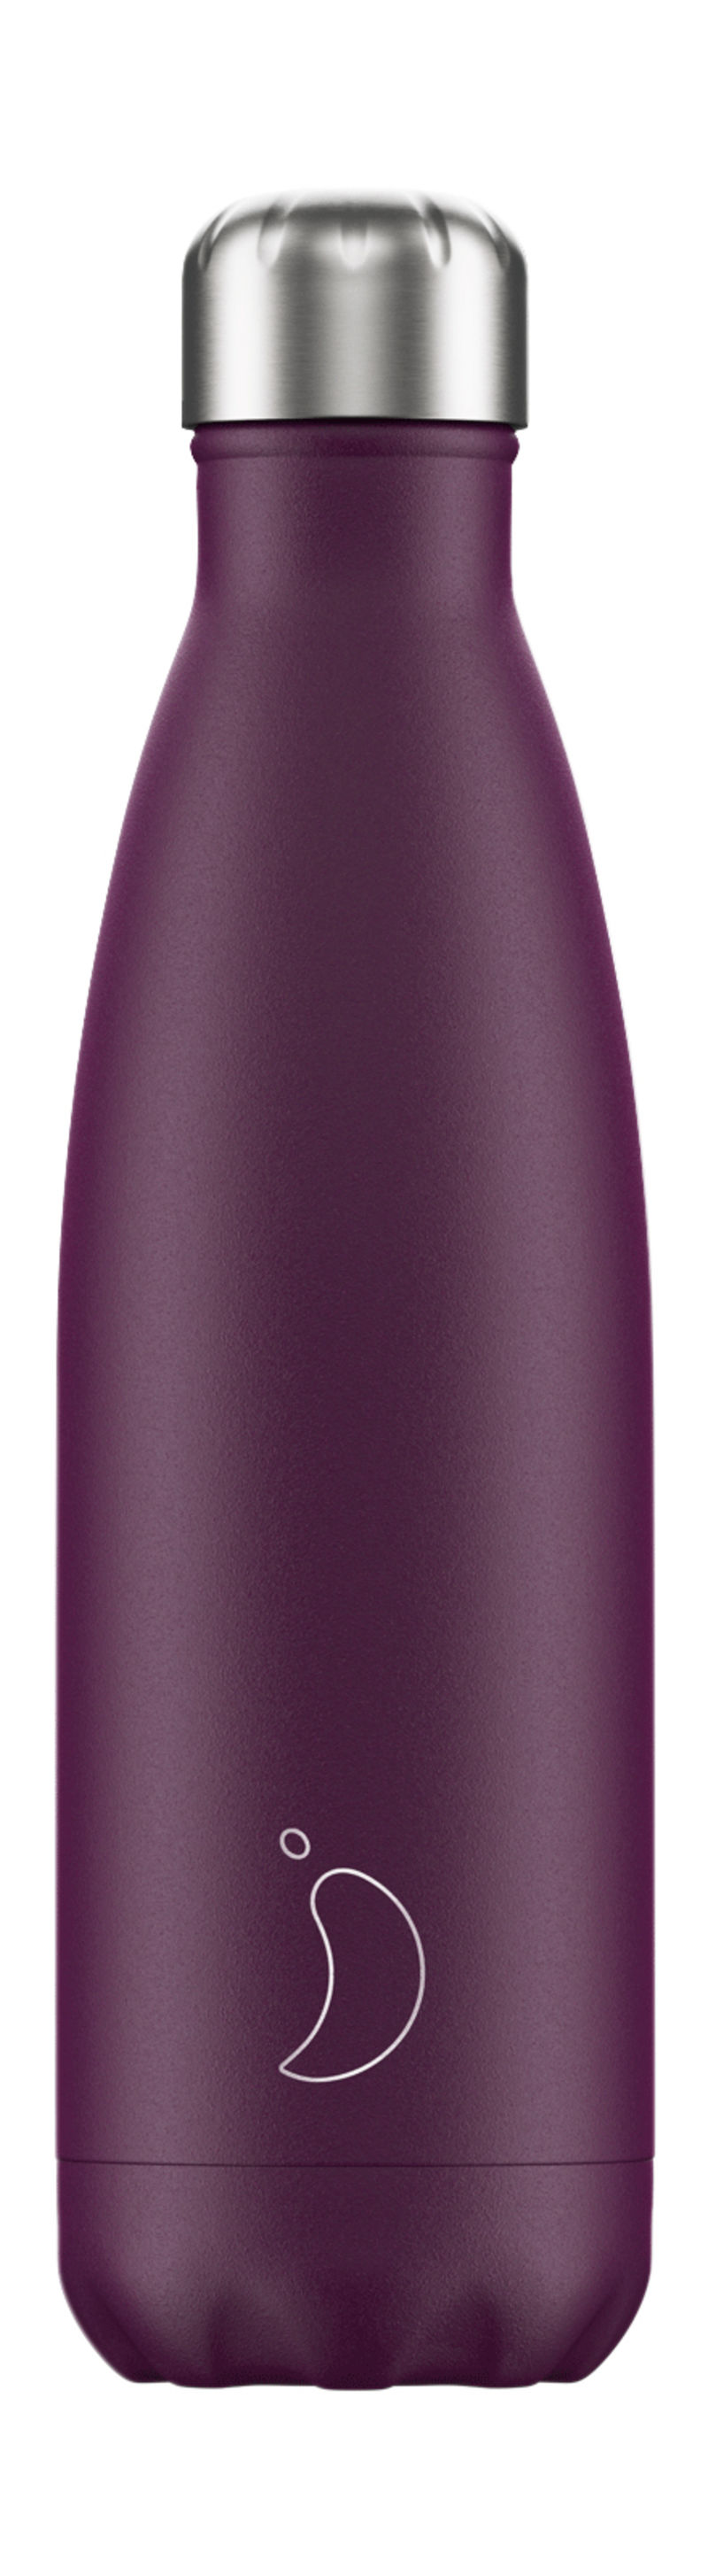 BOTELLA INOX PURPURA MATE 500ML